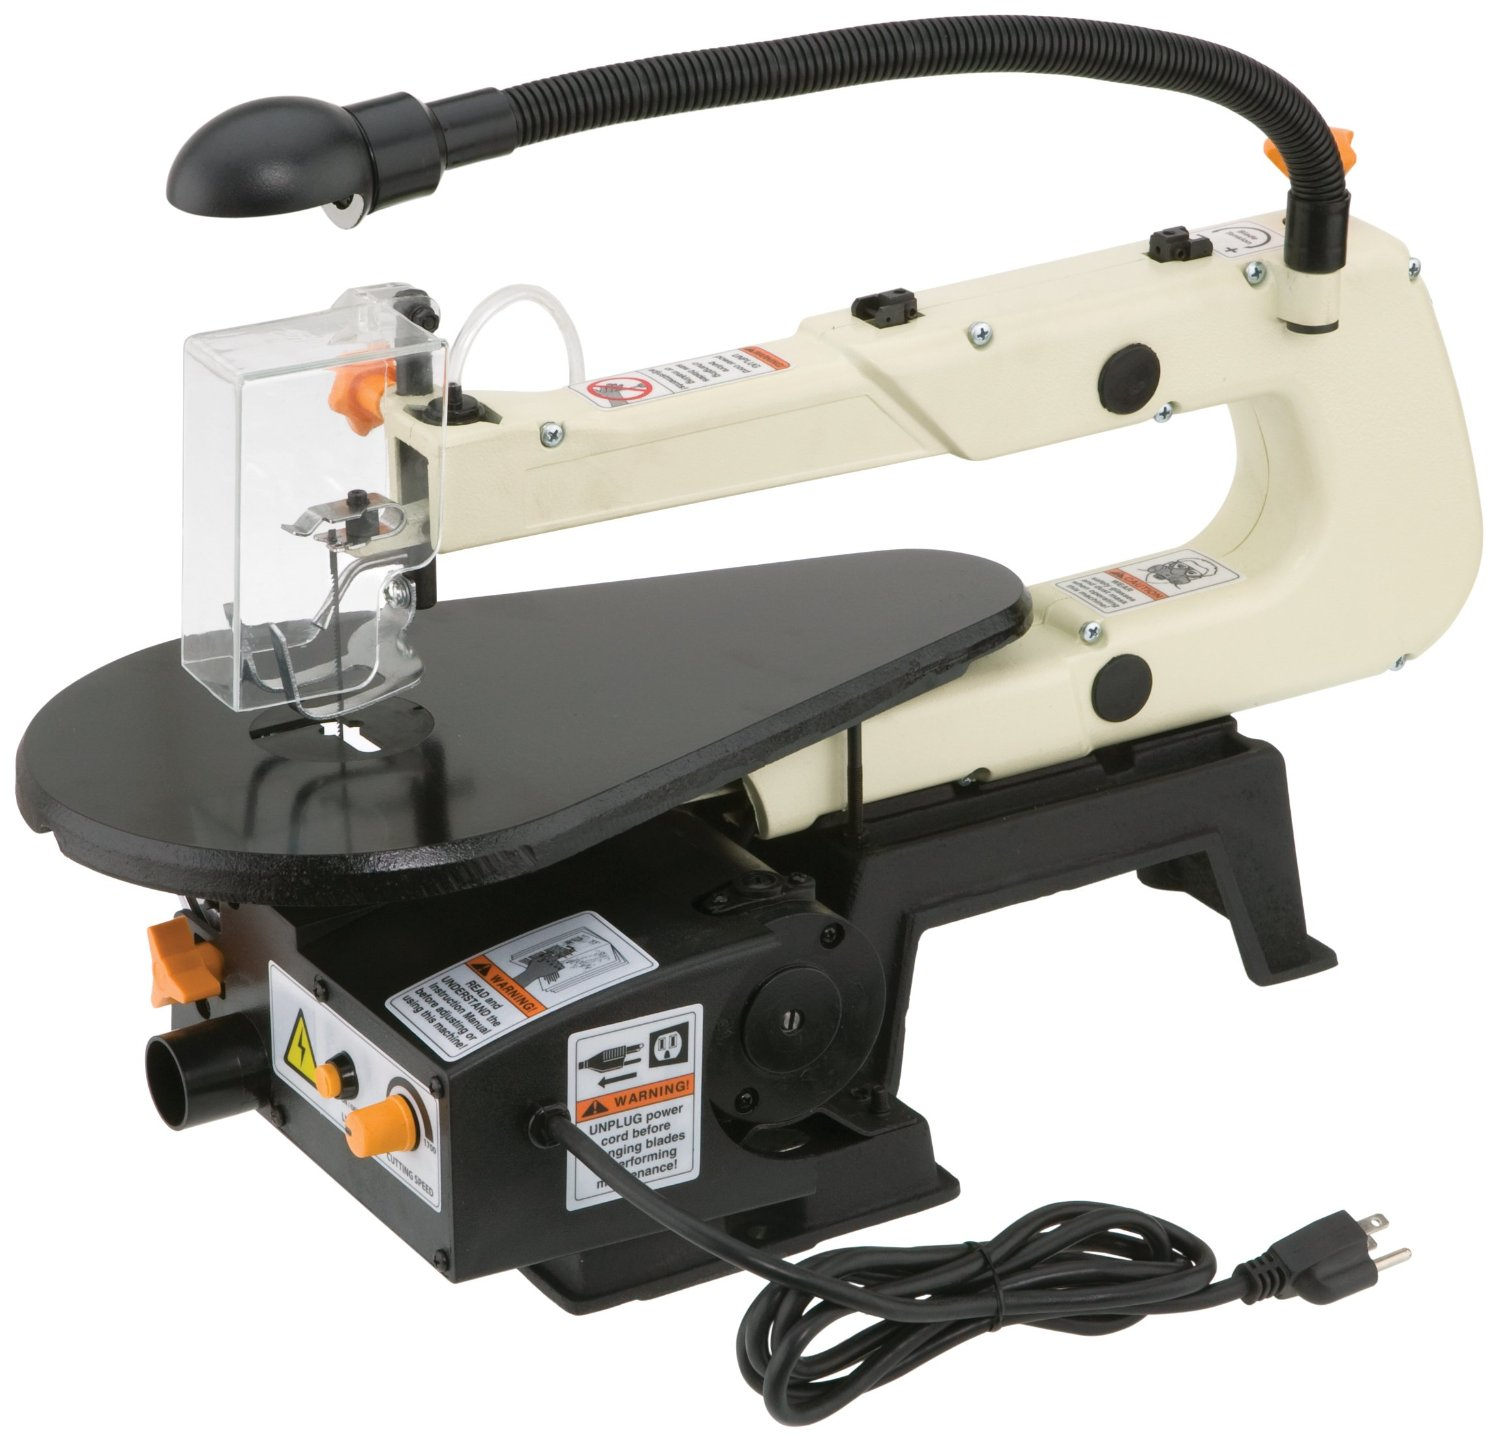 Shop fox w1713 16 inch variable speed scroll saw review greentooth Choice Image